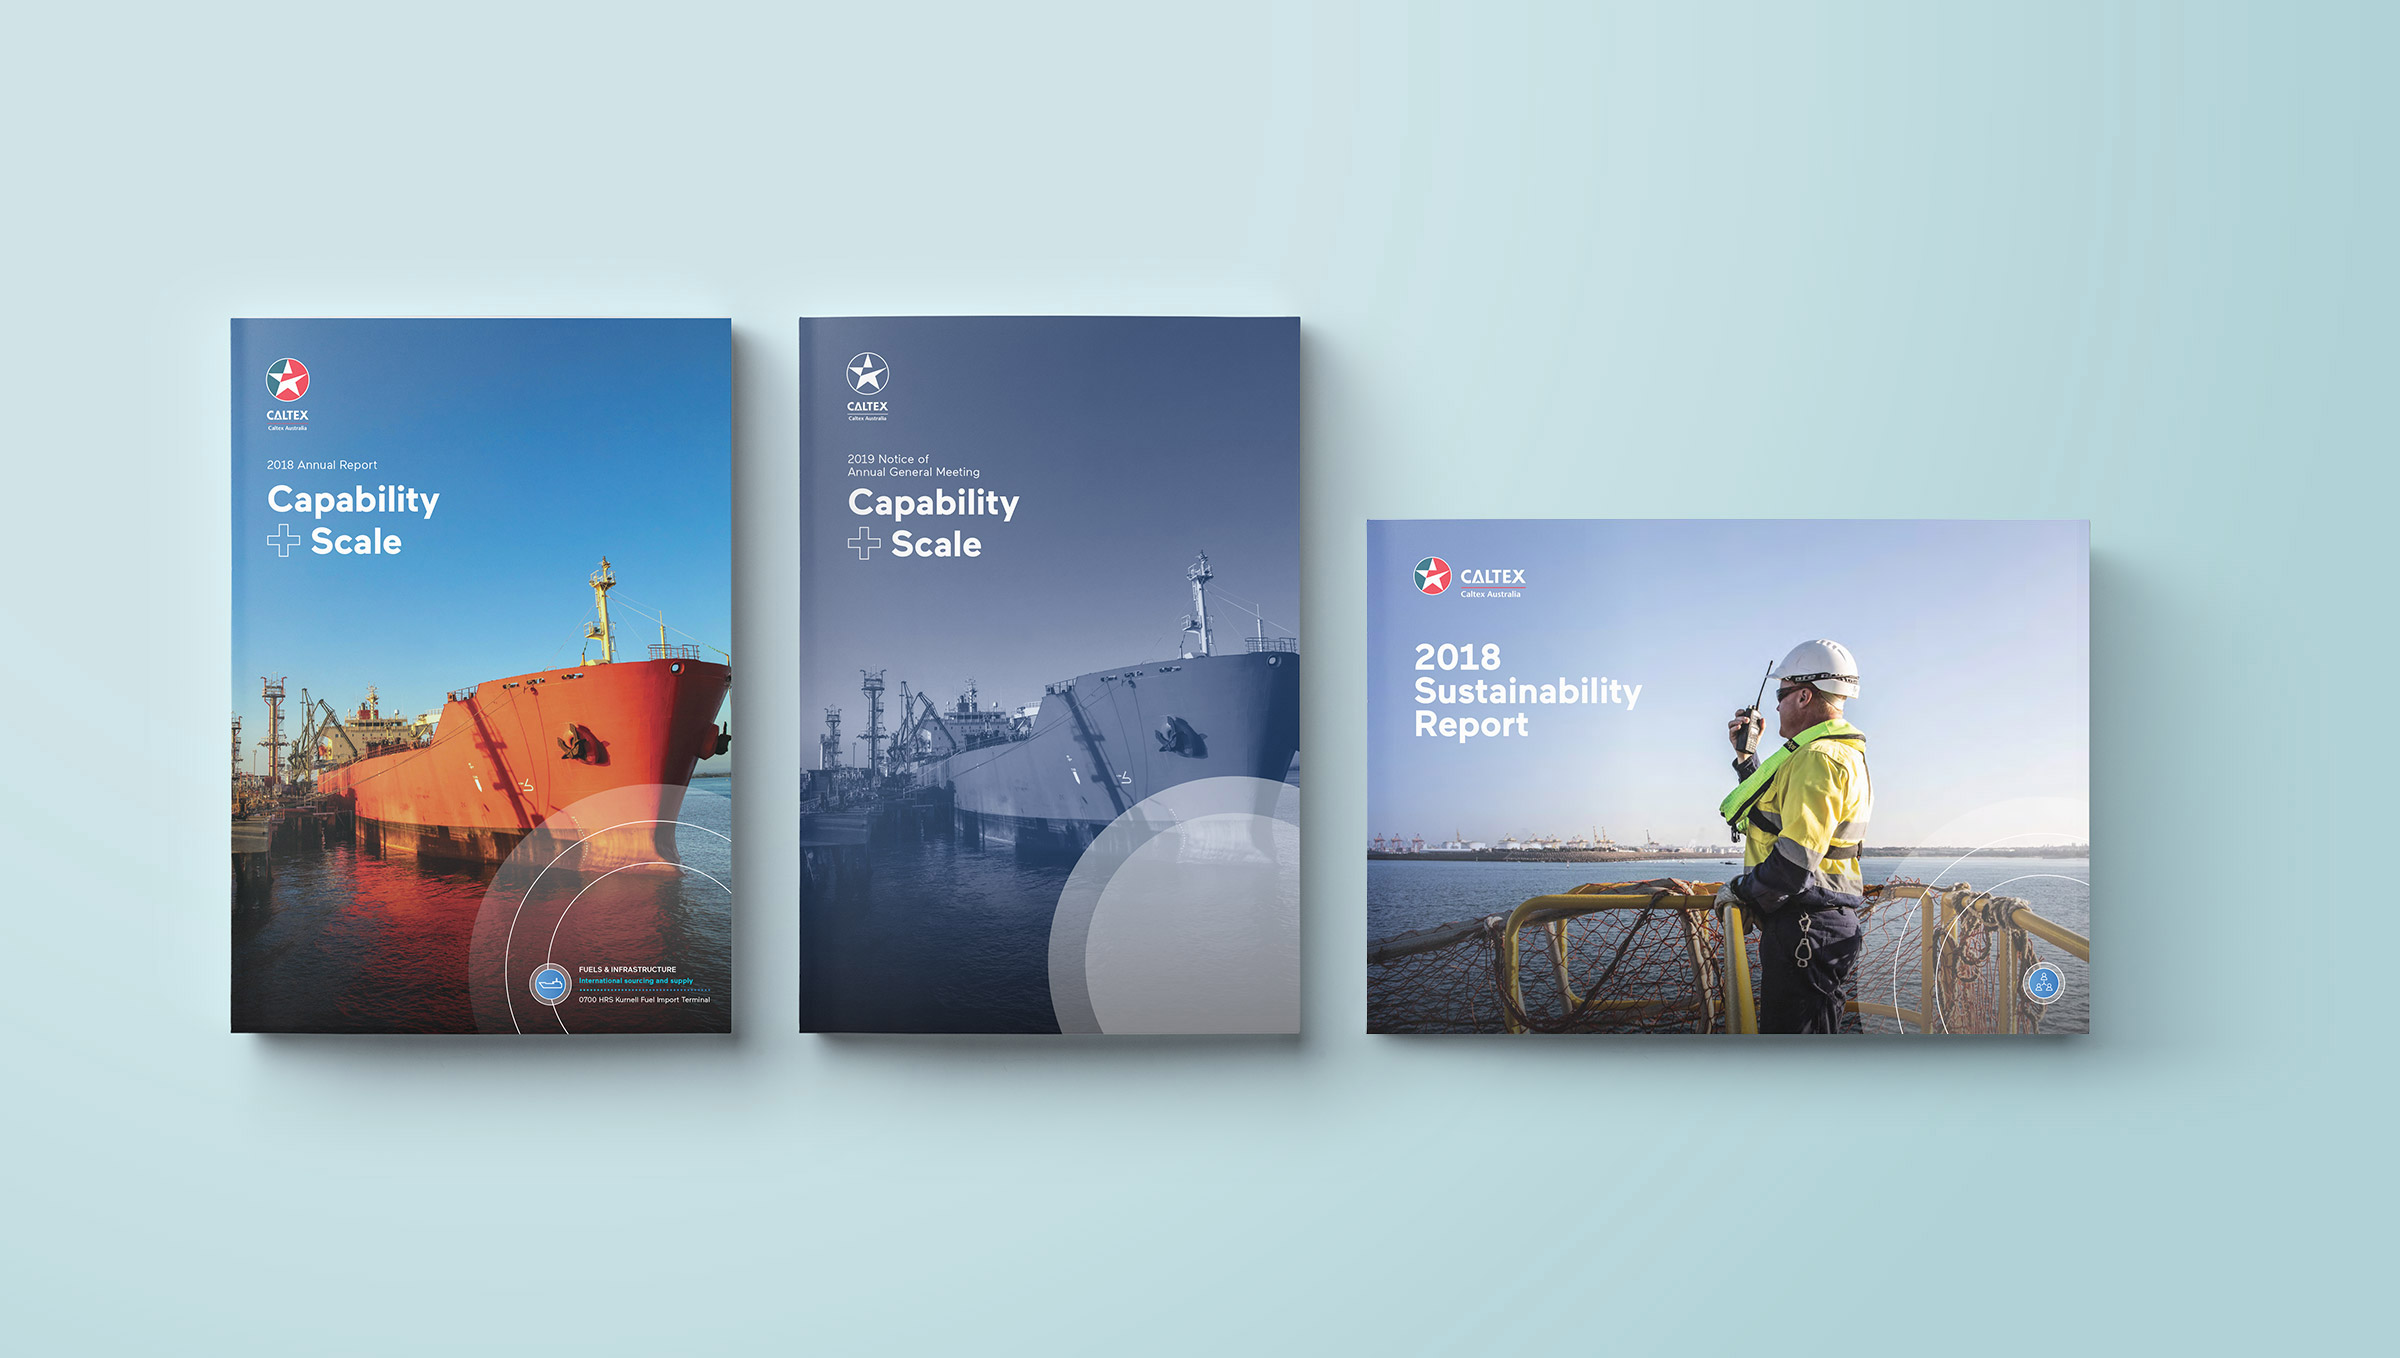 Caltex. Annual Report. 'Annual Report', 'Notice of AGM' and 'Sustainability Report' covers.